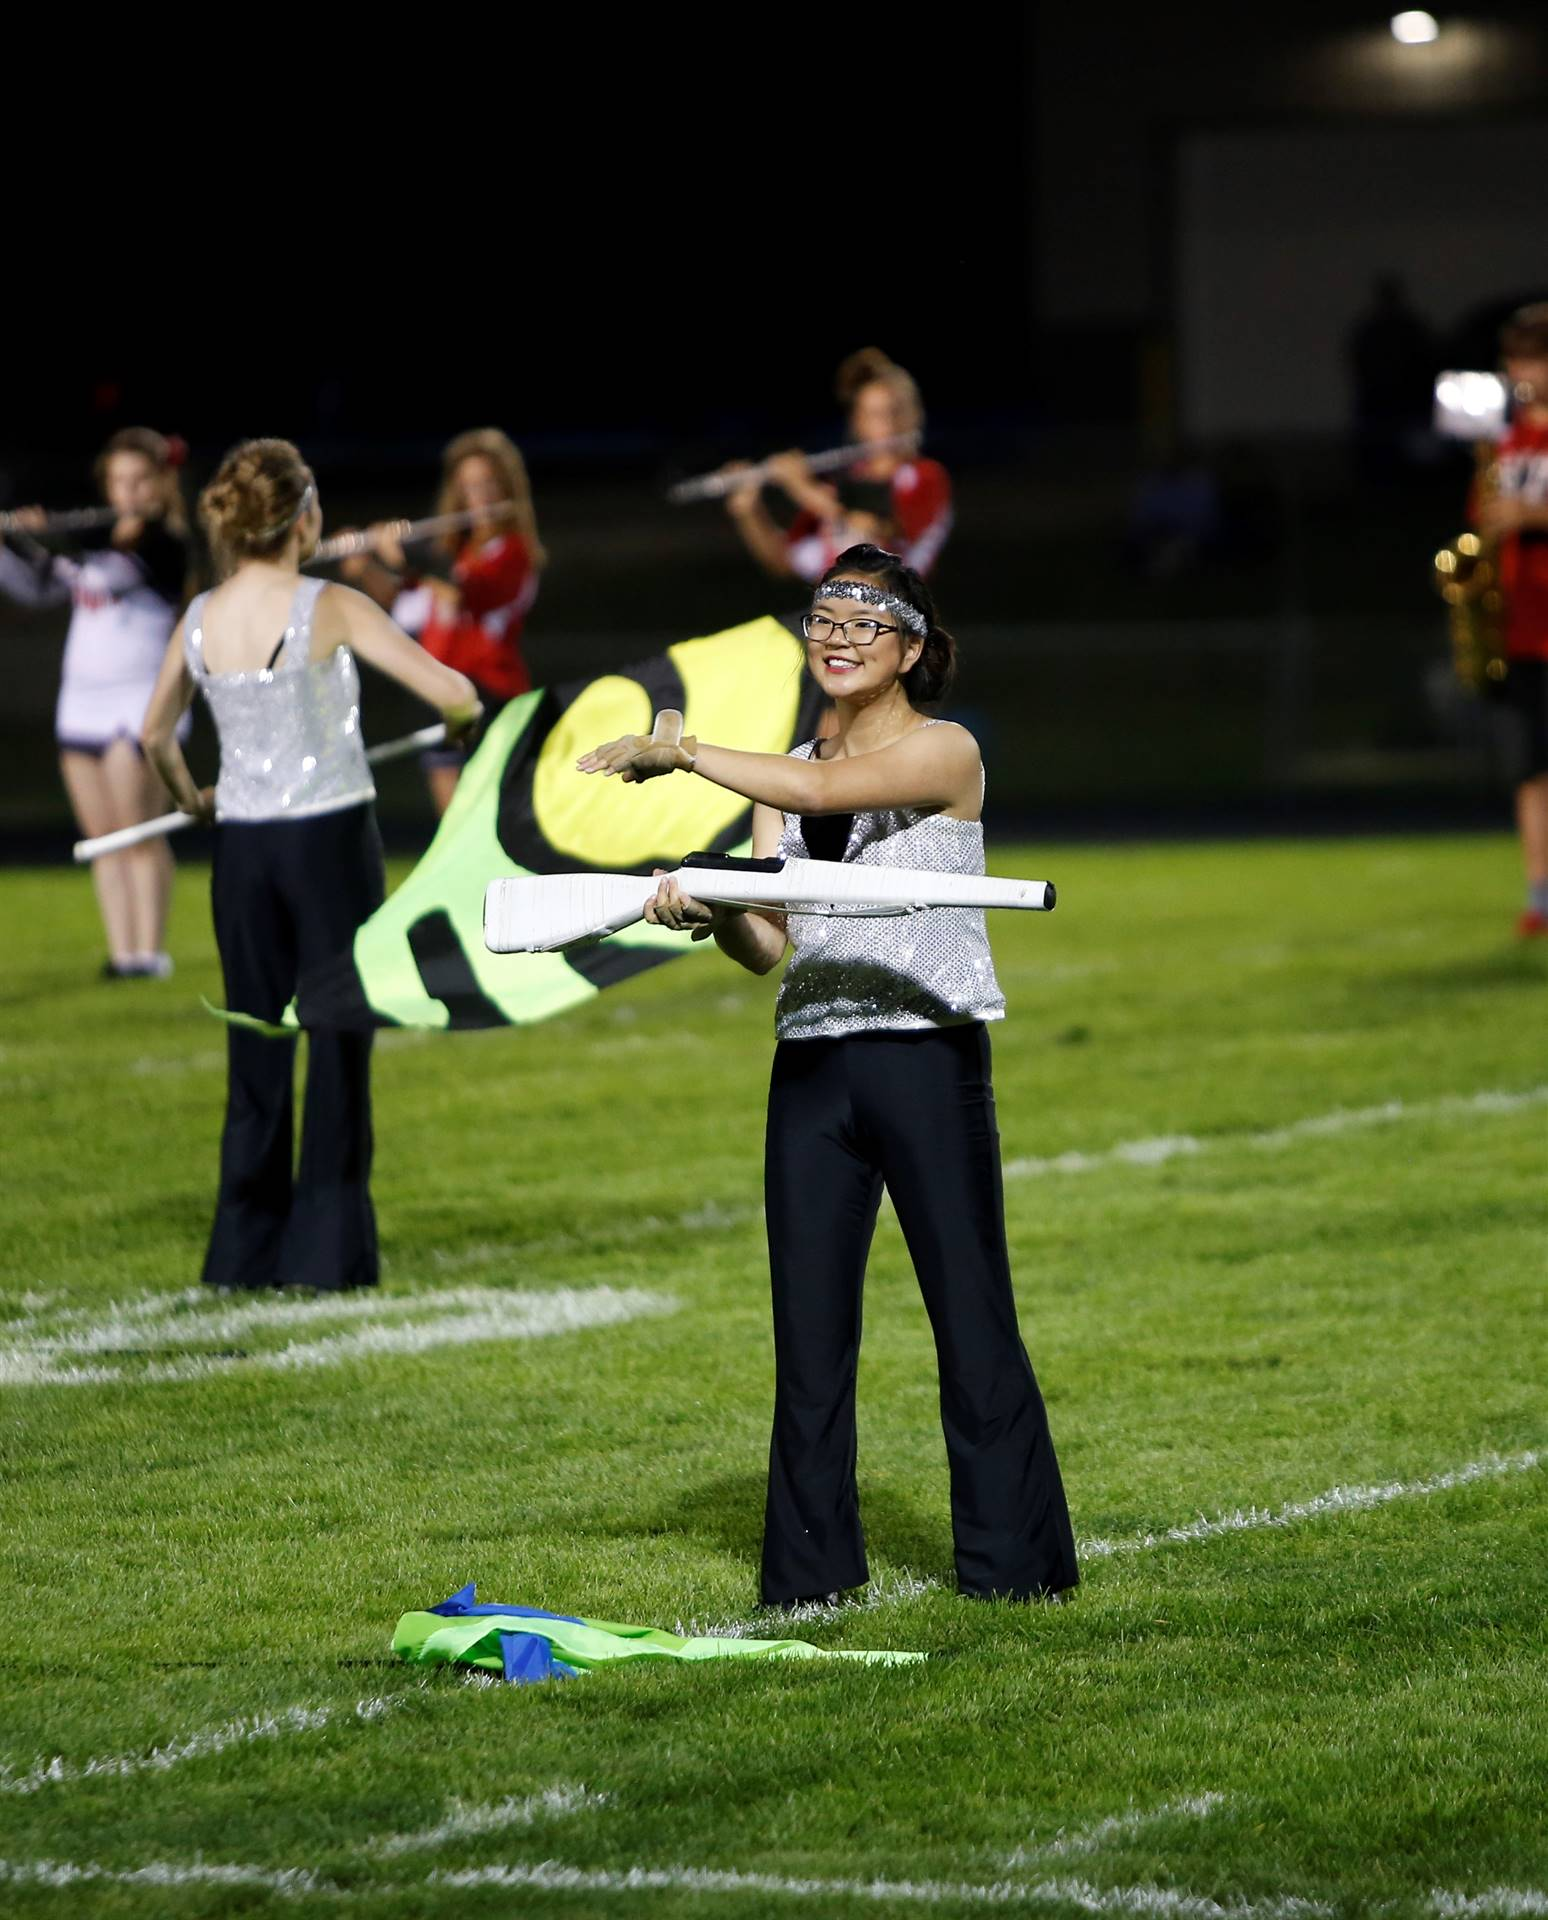 Girl performing on football field with flag